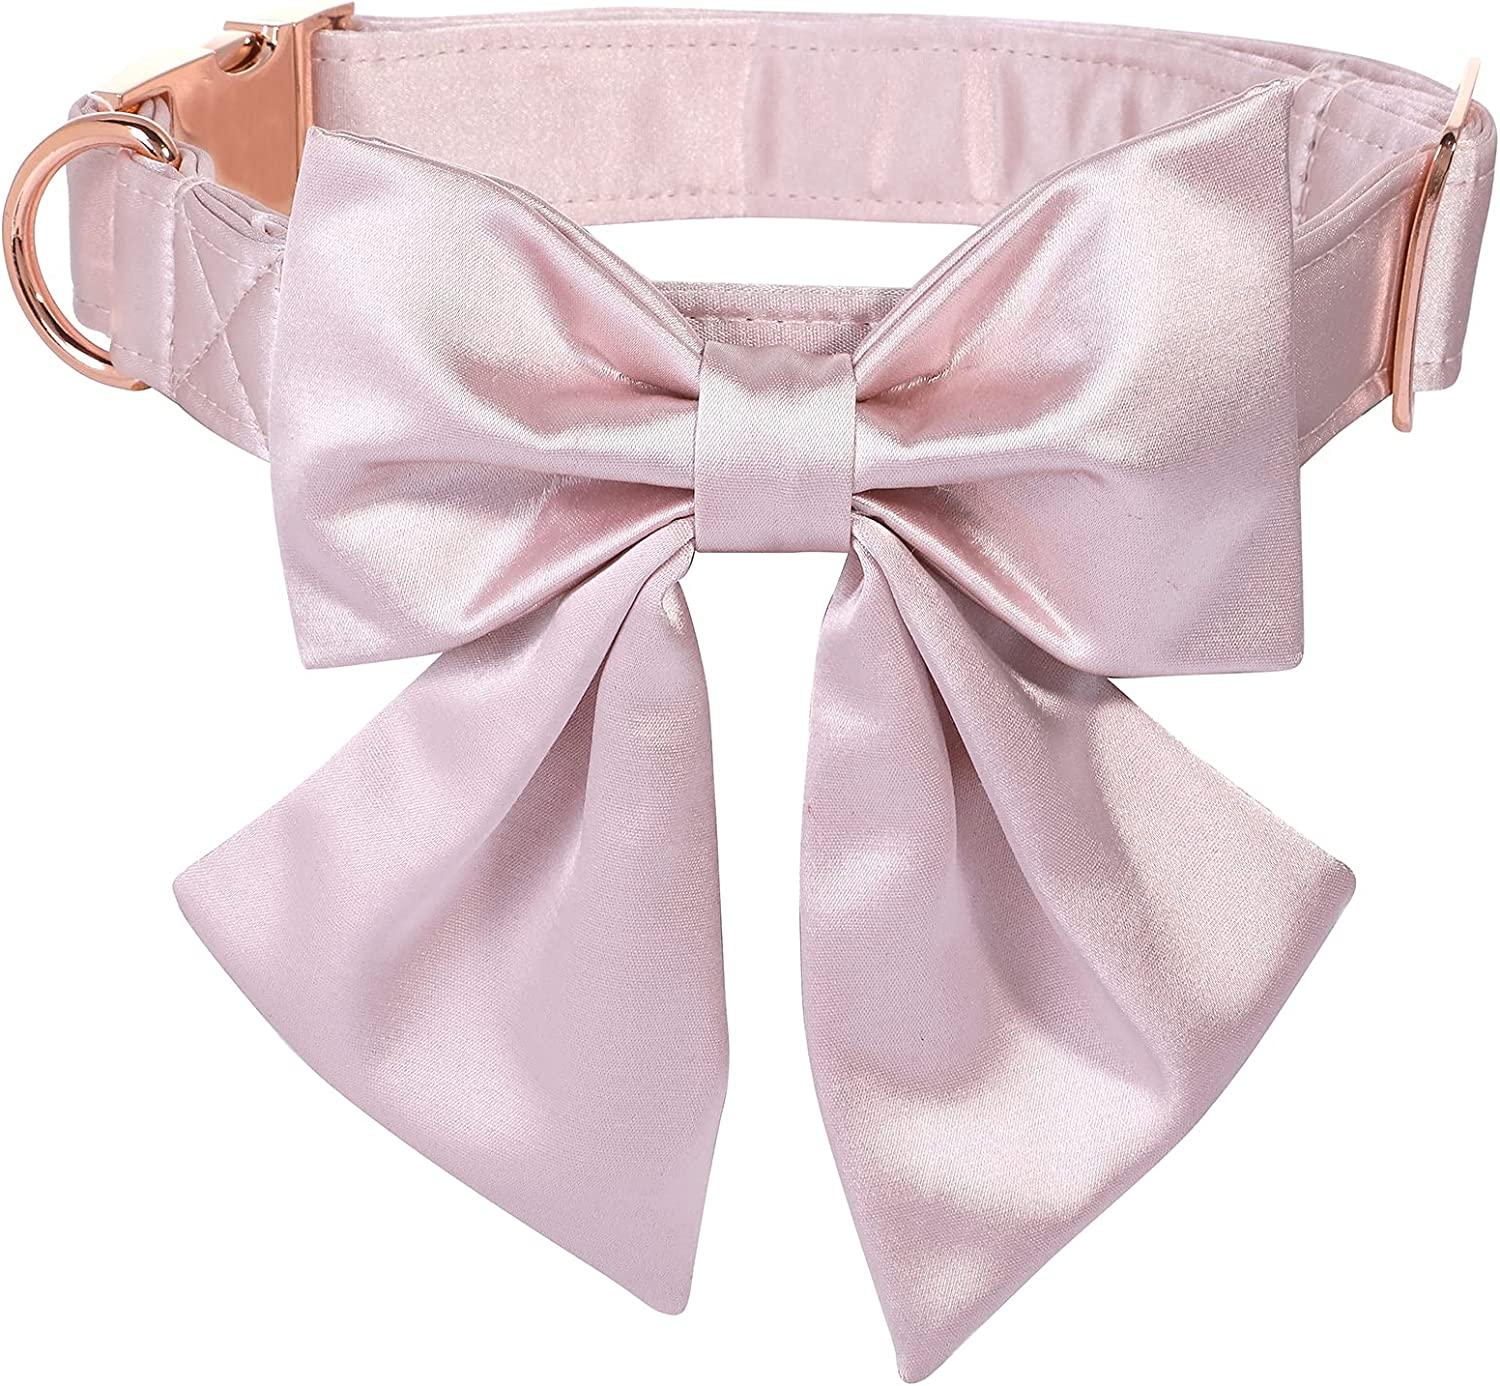 Lionet Paws Bowtie Spring new work one Oakland Mall after another Dog Collar Cute Comfortable - Silk